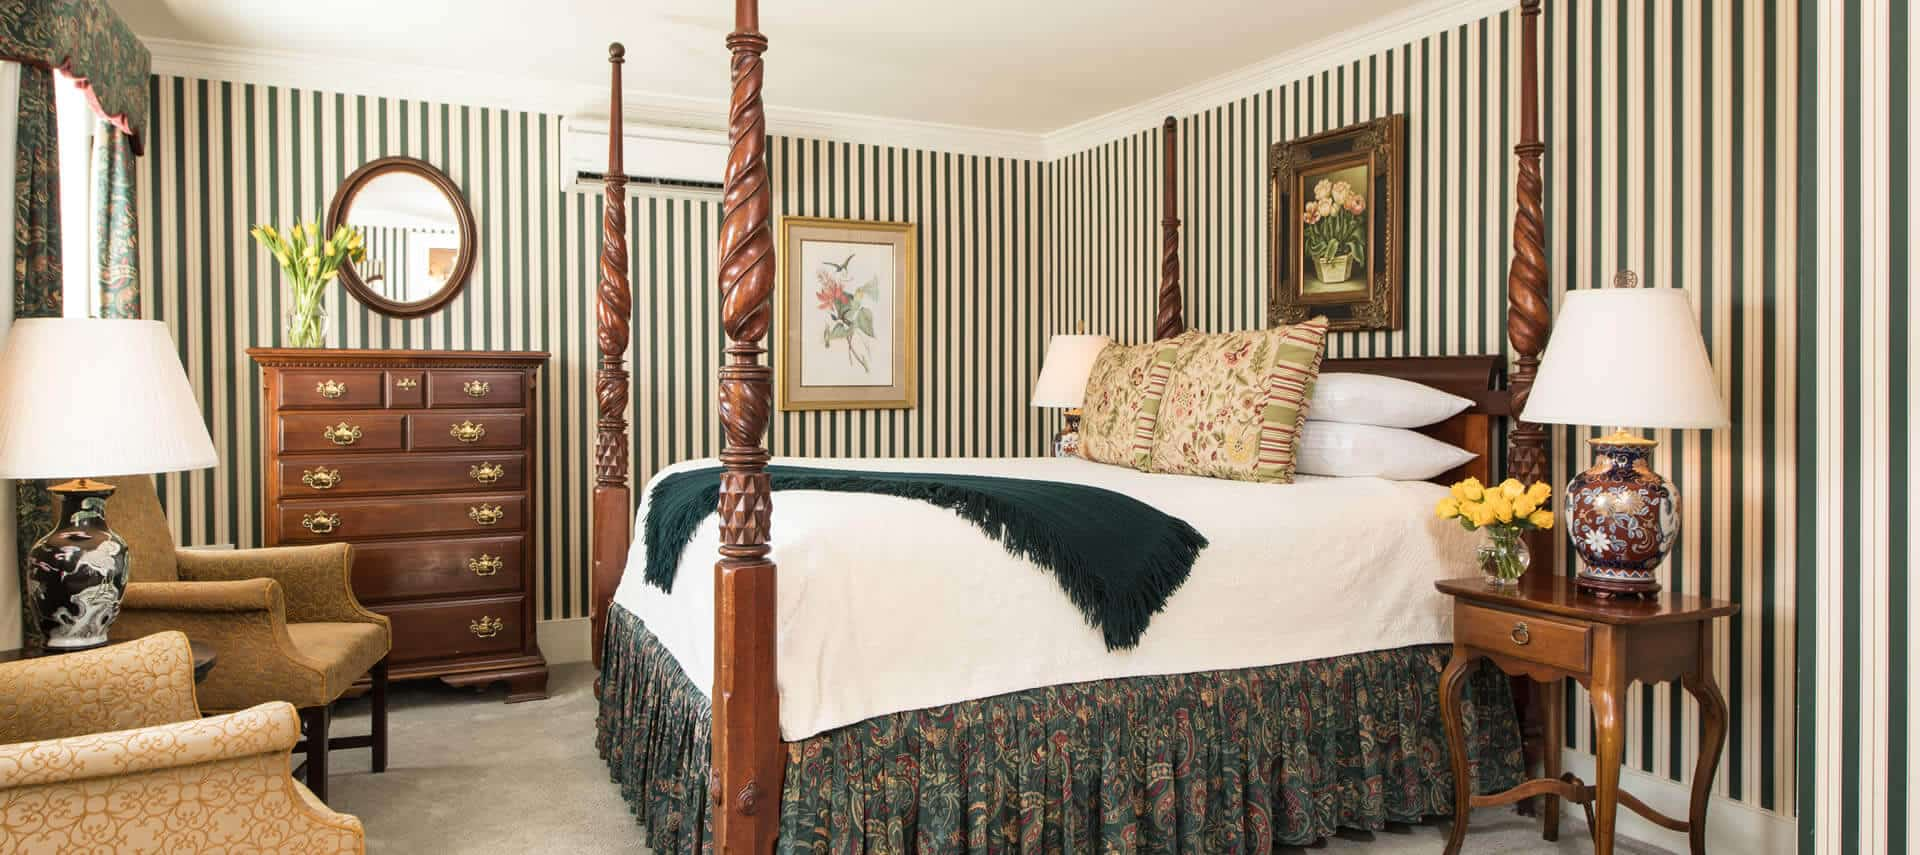 Charming room with a four-post bed, two chairs, green striped wallpaper, and elegant antique wooden furniture.